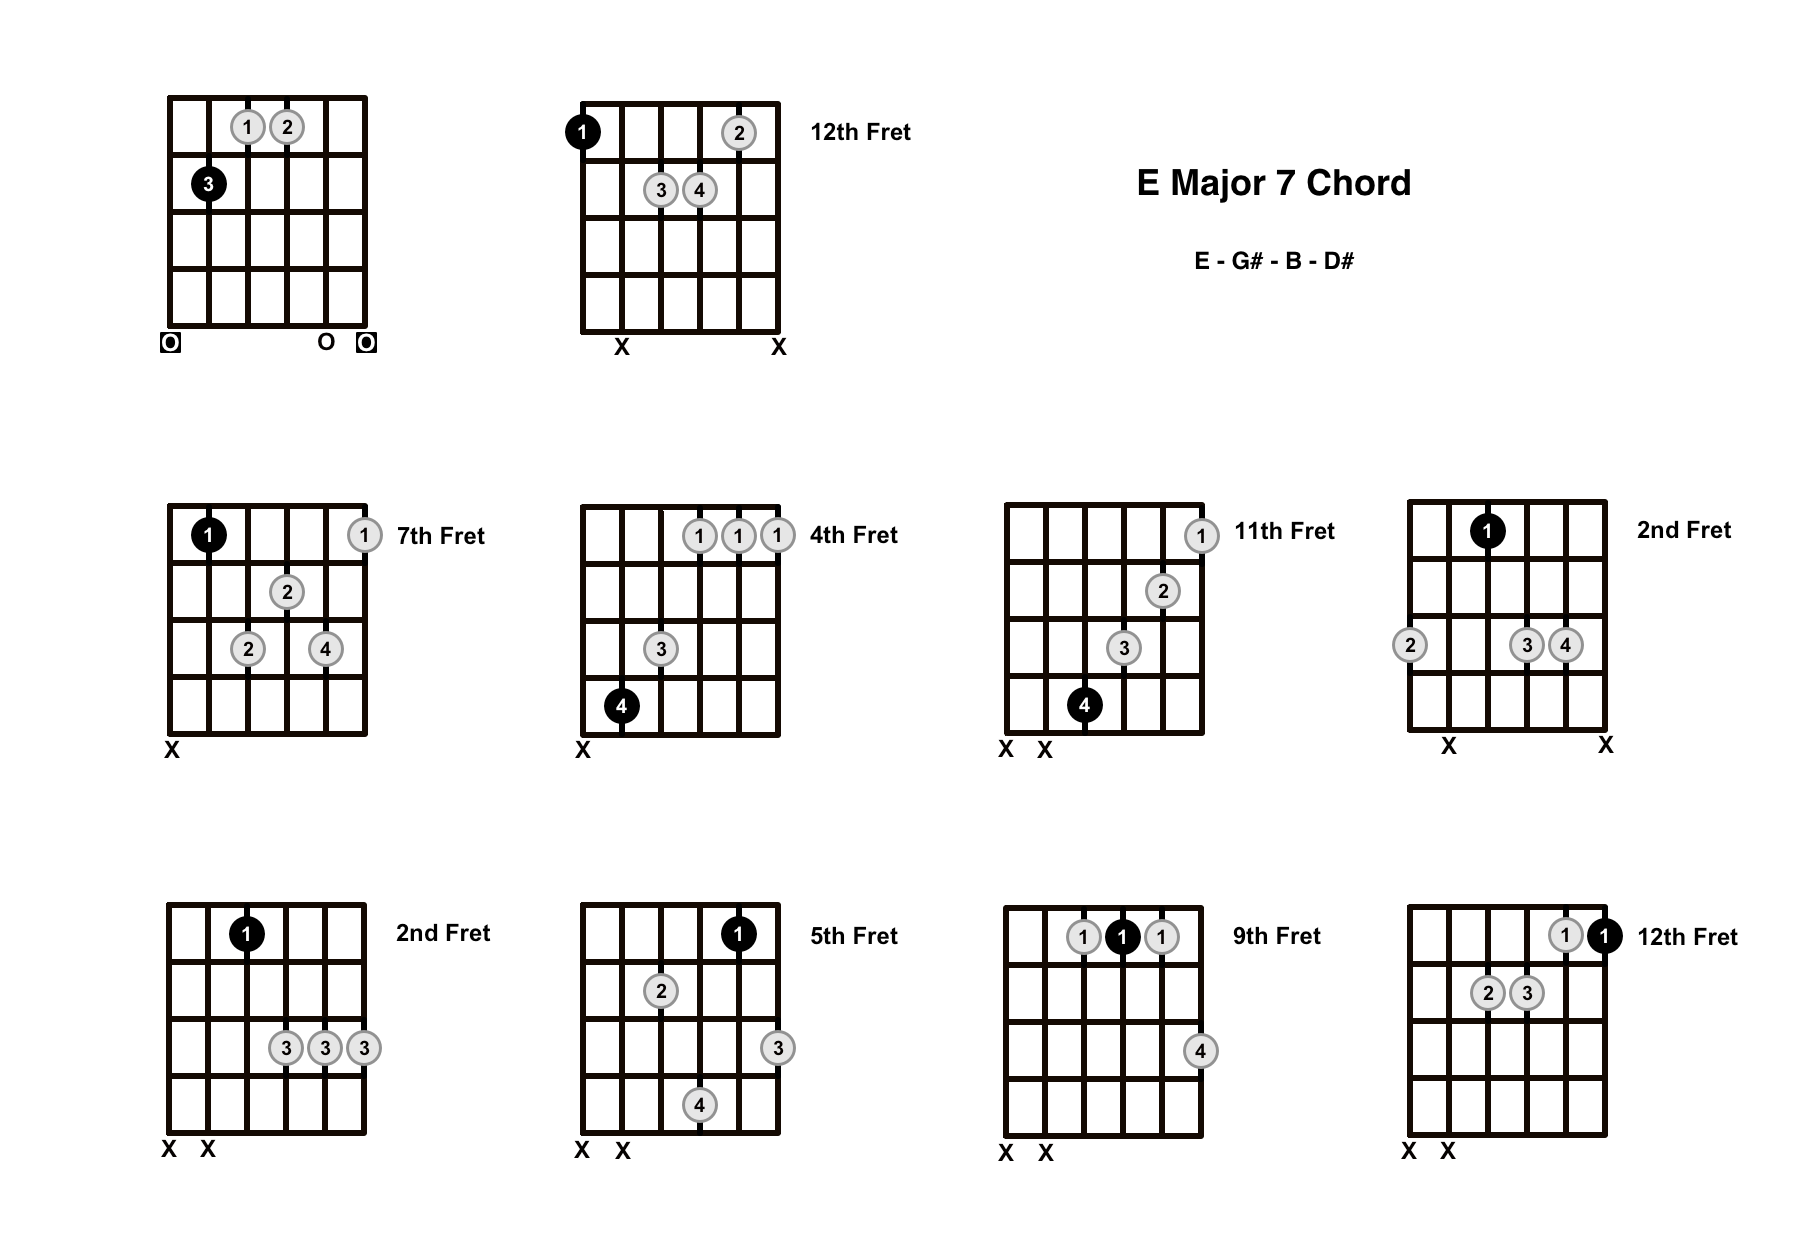 E Major 7 Chord On The Guitar (E Maj 7) – Diagrams, Finger Positions and Theory